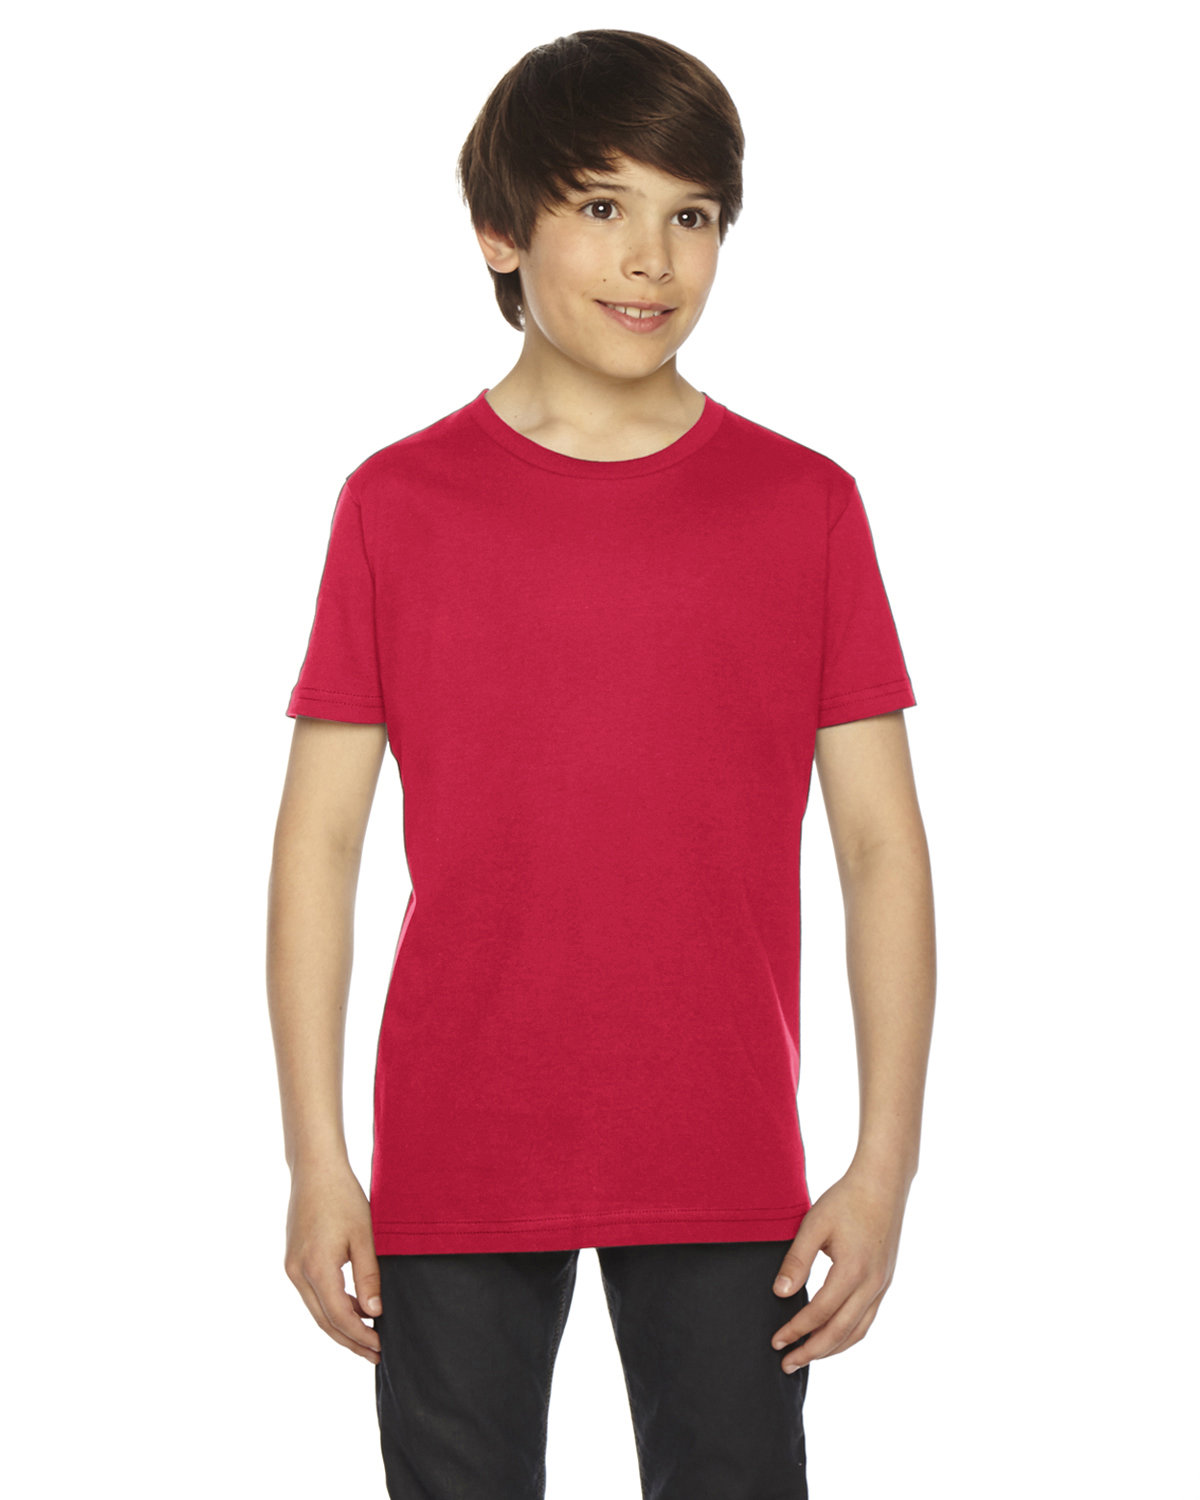 American Apparel Youth Fine Jersey Short-Sleeve T-Shirt RED